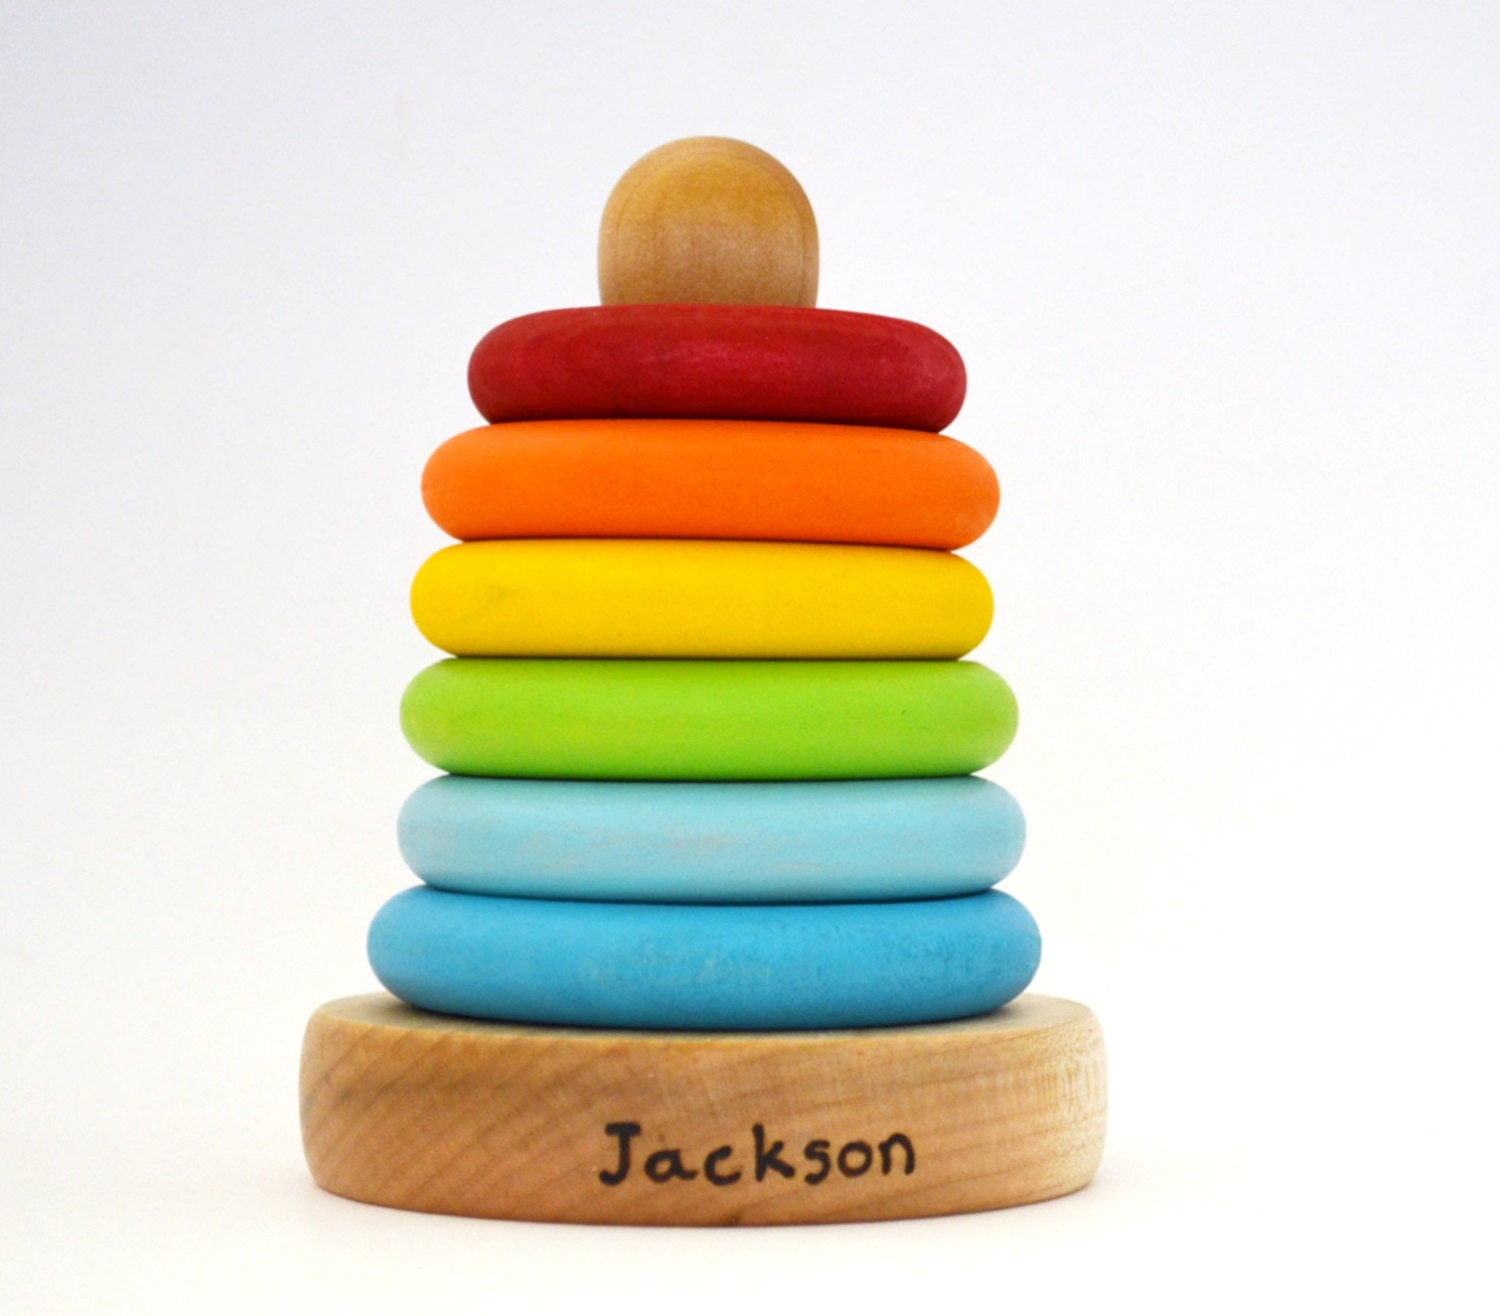 Kids Stacking Toys : Personalized wooden toy stacking rings eco by hcwoodcraft